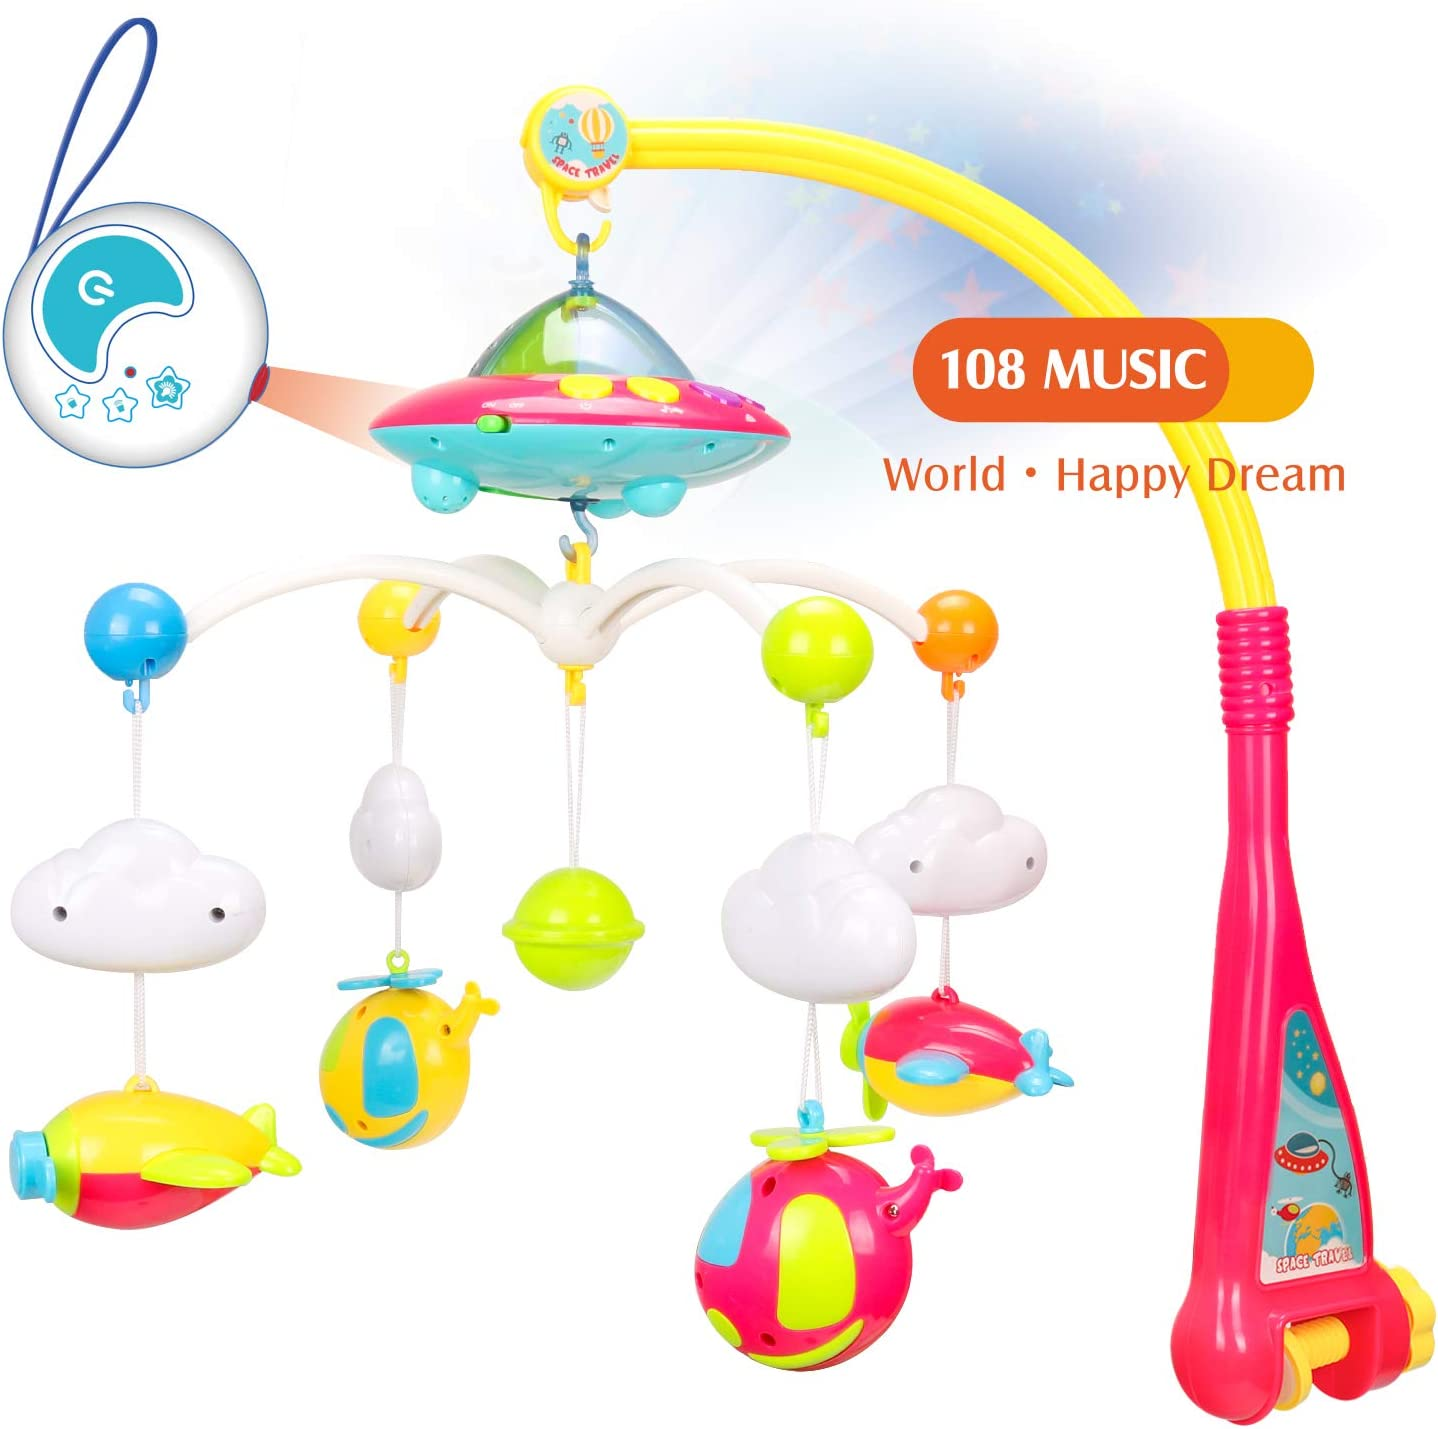 Infant Bedbell Rattle Toy Rotating Musical Baby Bed Mobile Toys Musical Hanging Rotating Bedbell Baby Comfort Cloth Toys Musical Baby Bed Mobile Toys For Cribs Baby Carriage